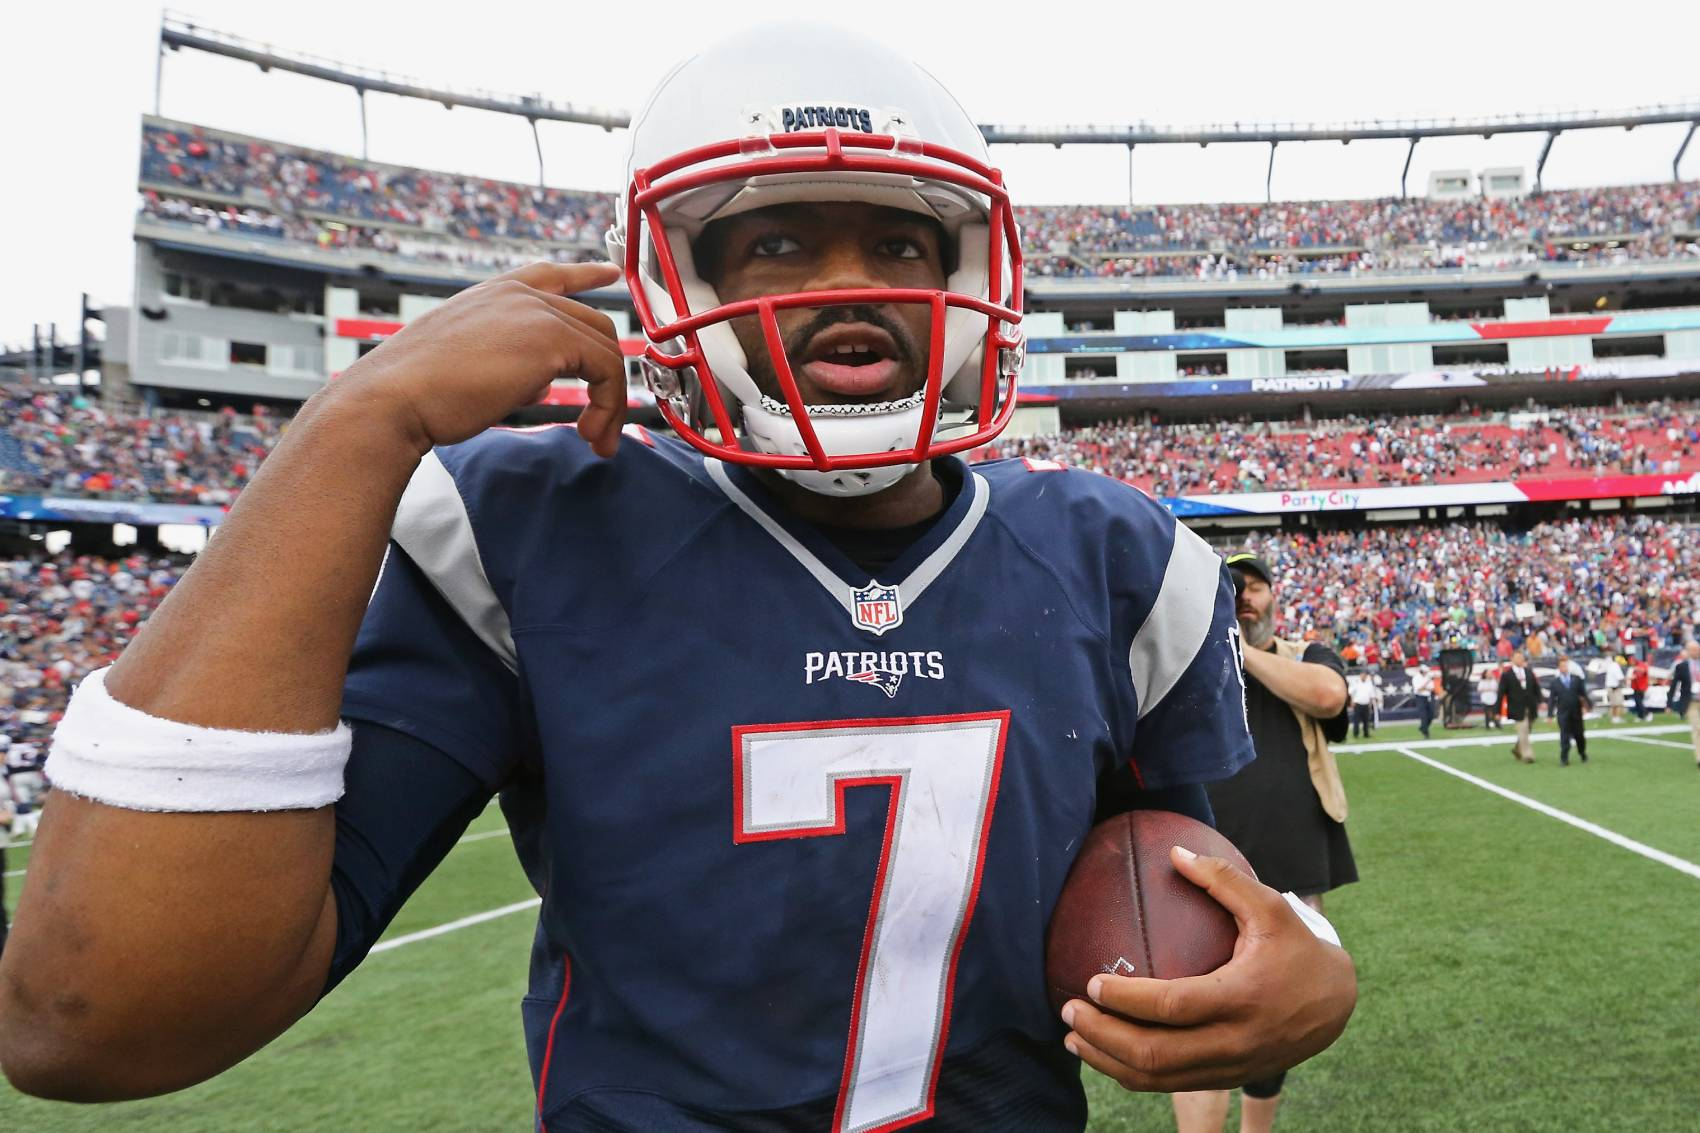 Jacoby Brissett prayed the New England Patriots wouldn't draft him. The Patriots traded Brissett to Indianapolis in 2017.